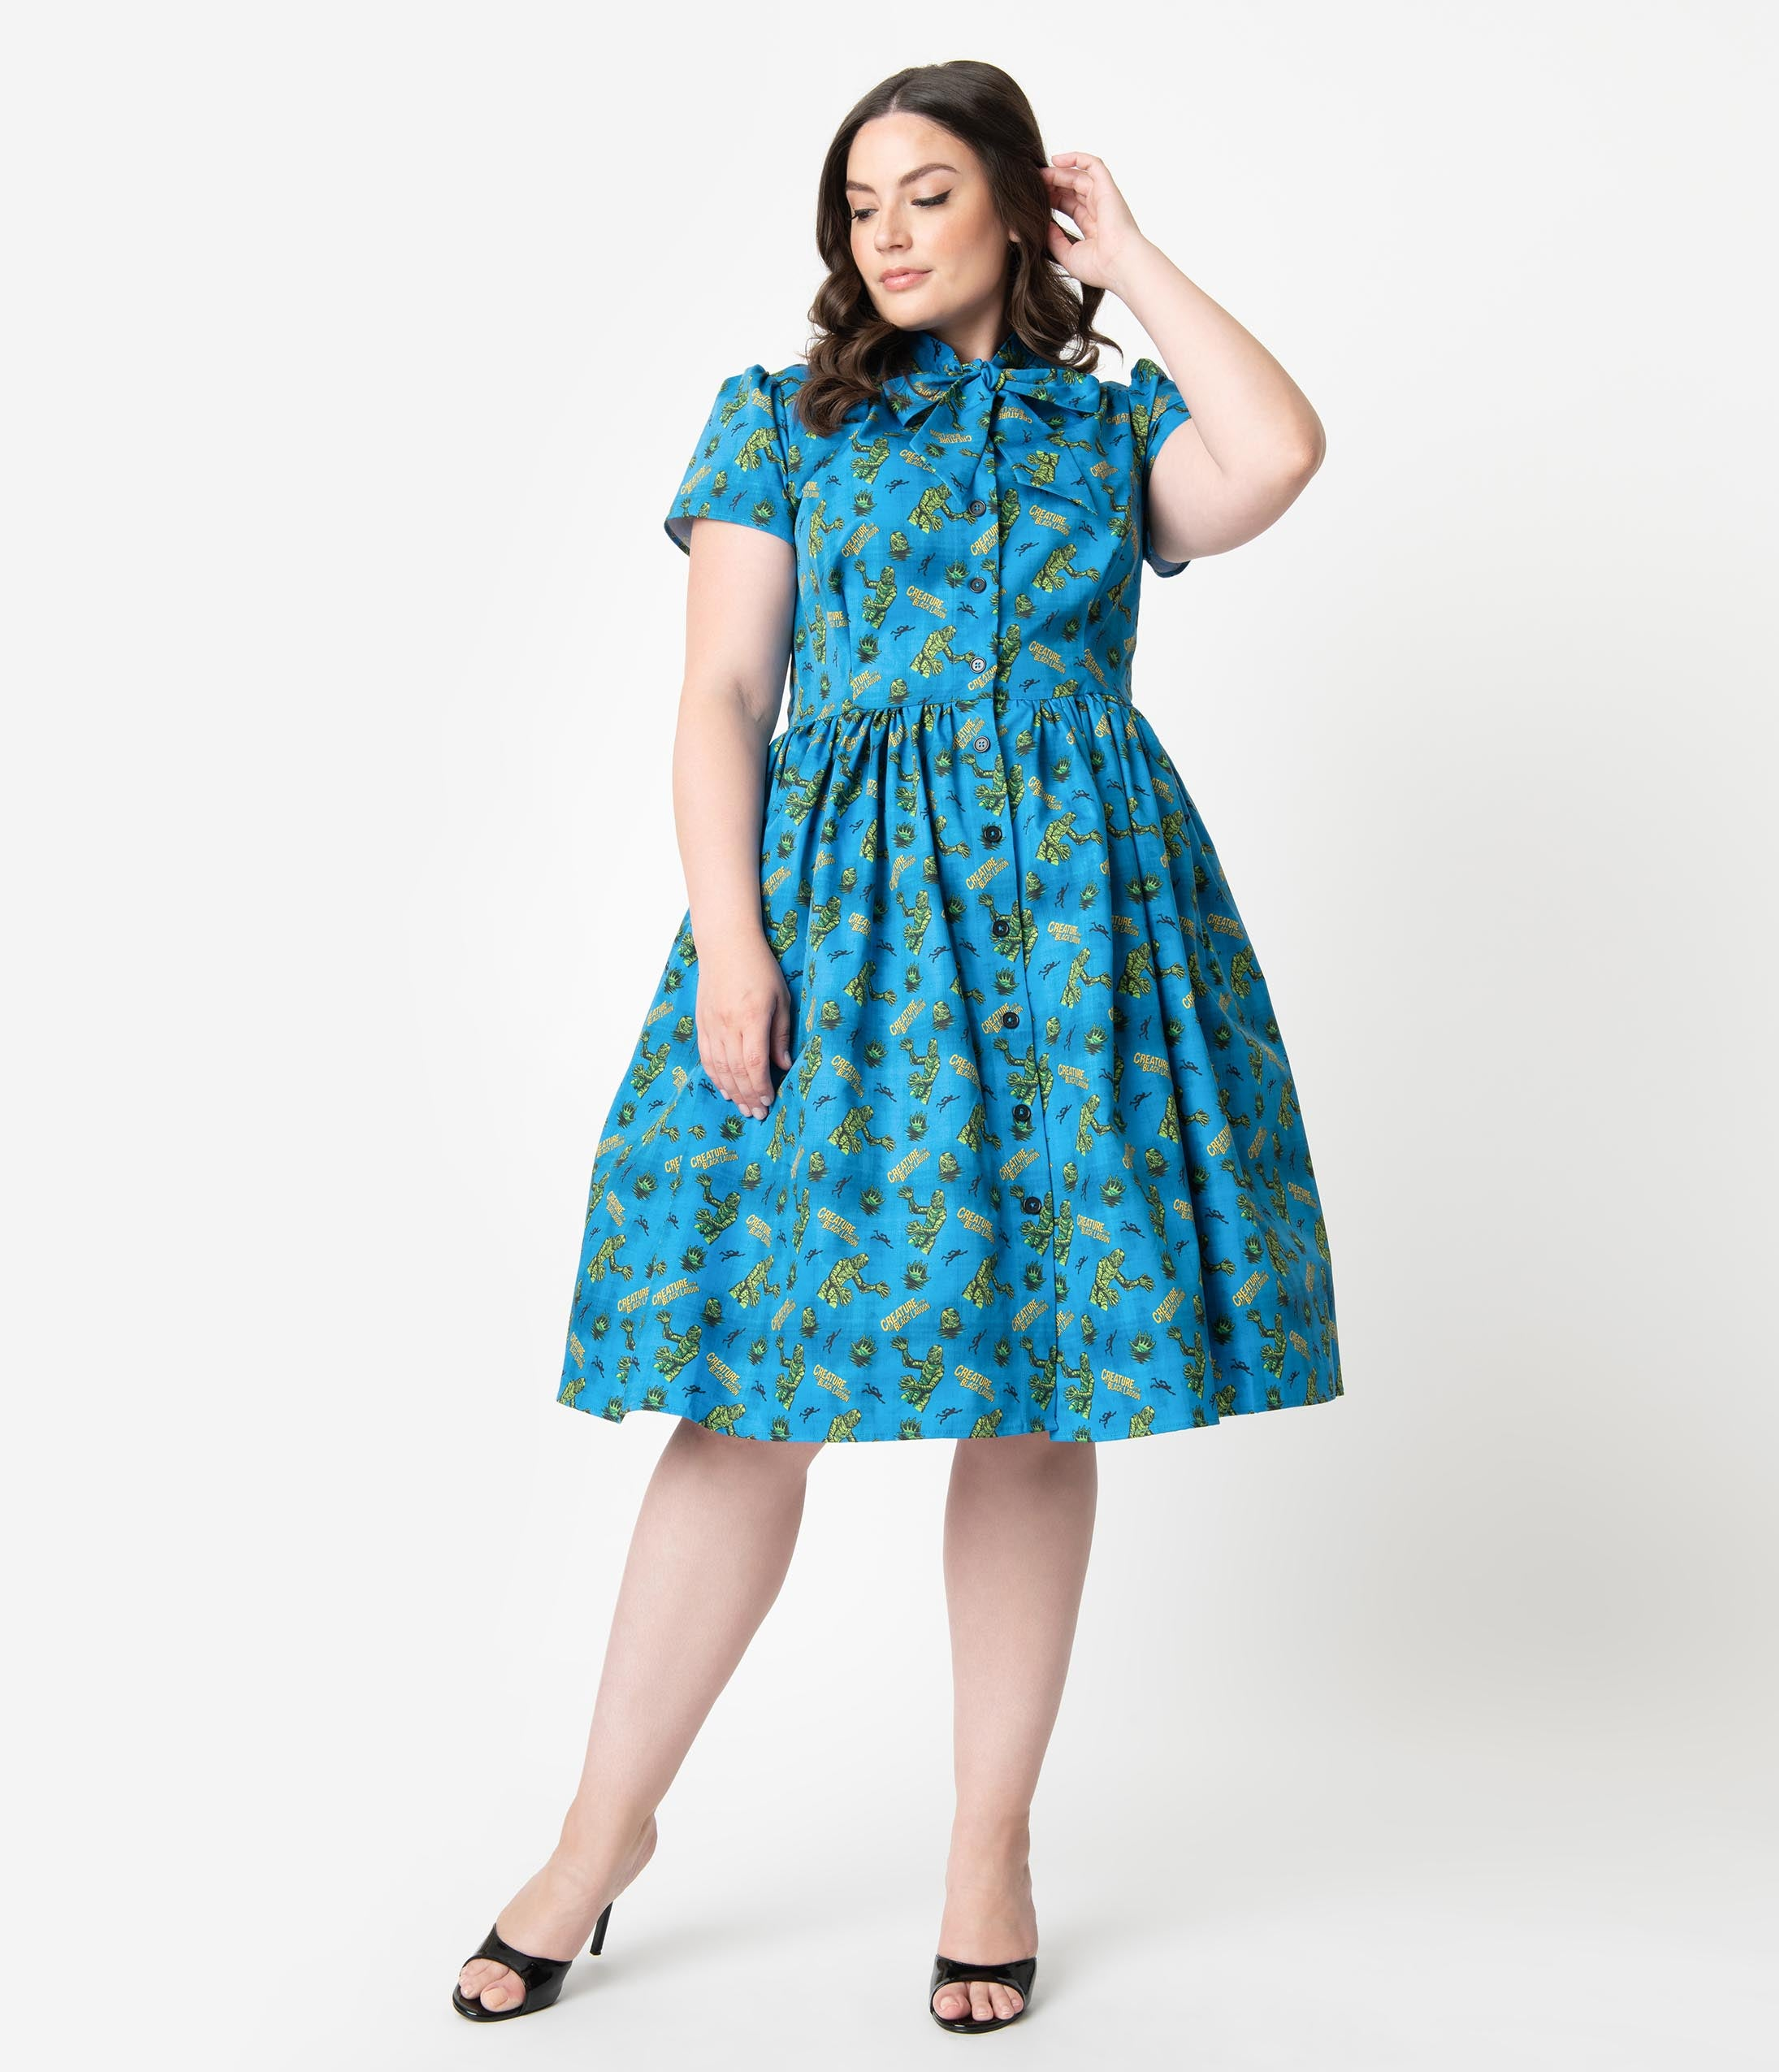 Plus-Size Vintage Dresses - Swing & Pencil Dresses – Unique ...